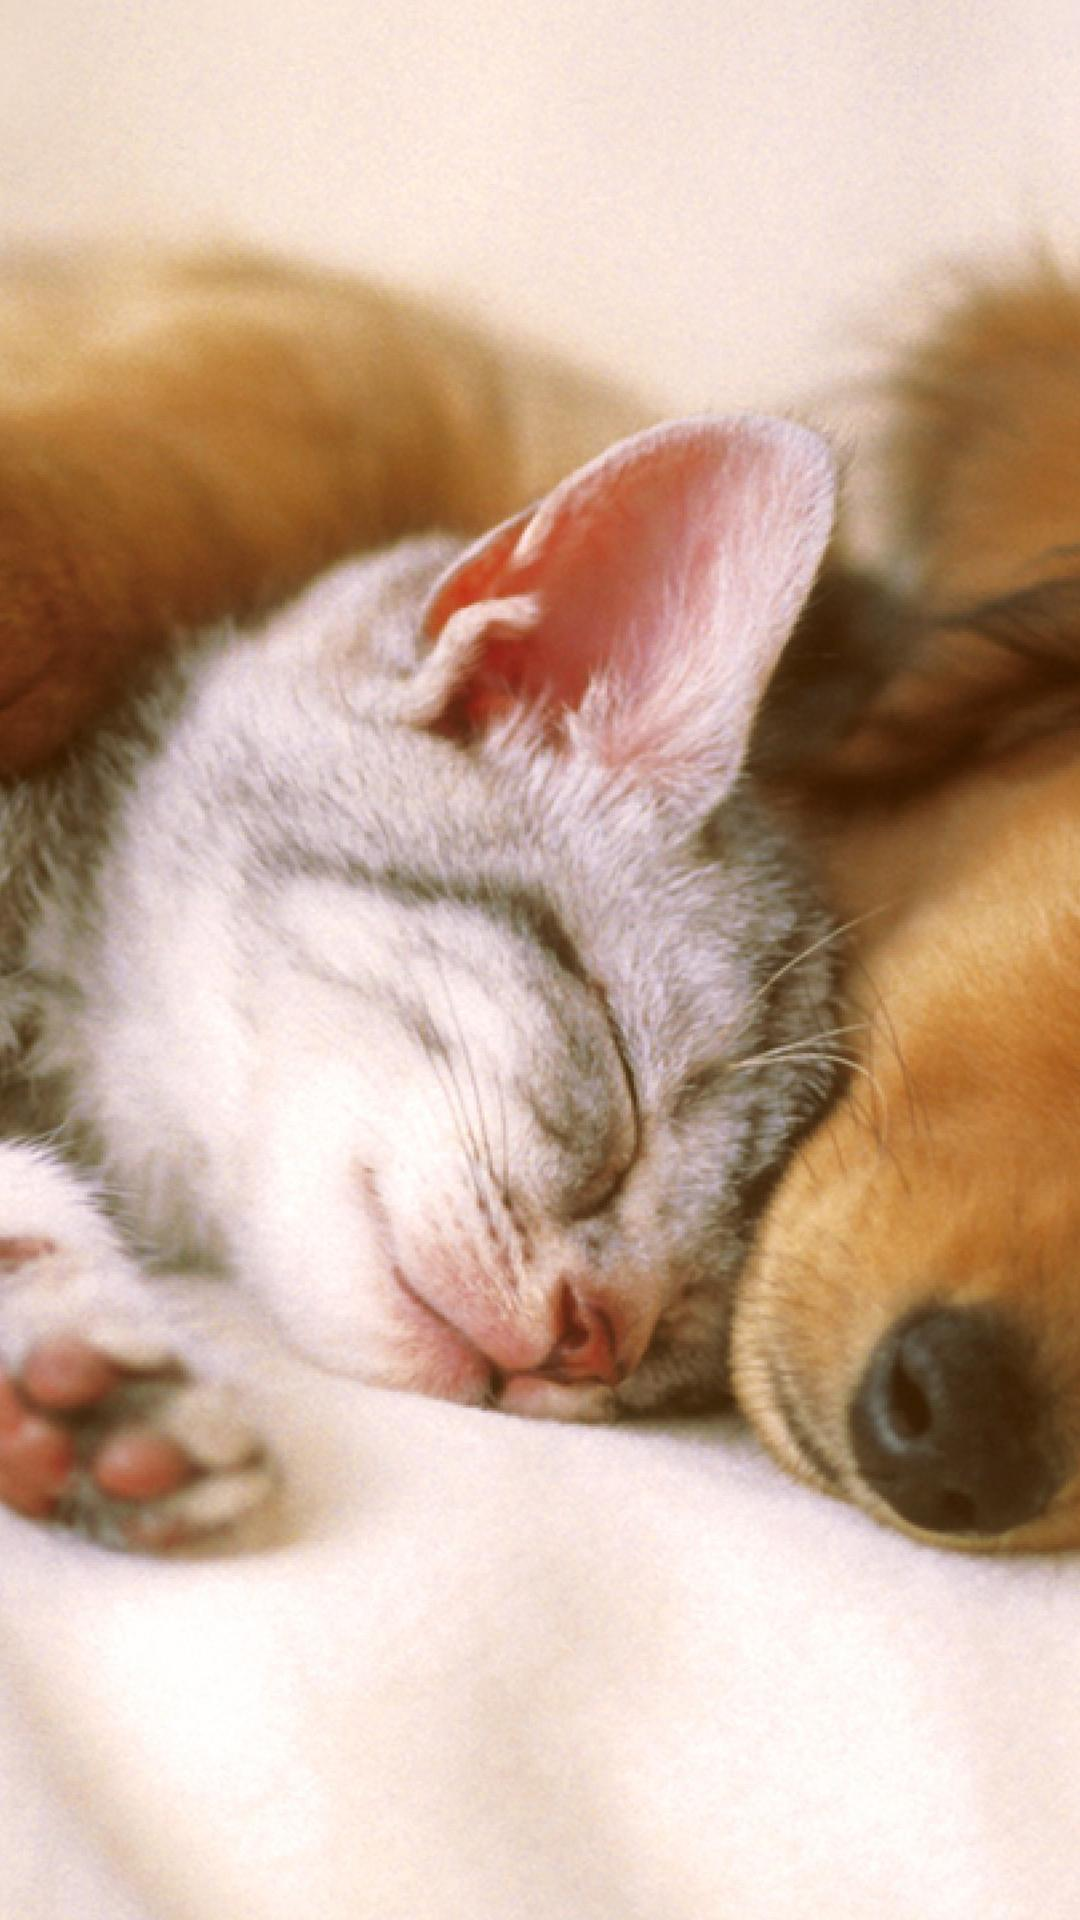 cute cat and dog sleep embrace wallpaper download 1080x1920